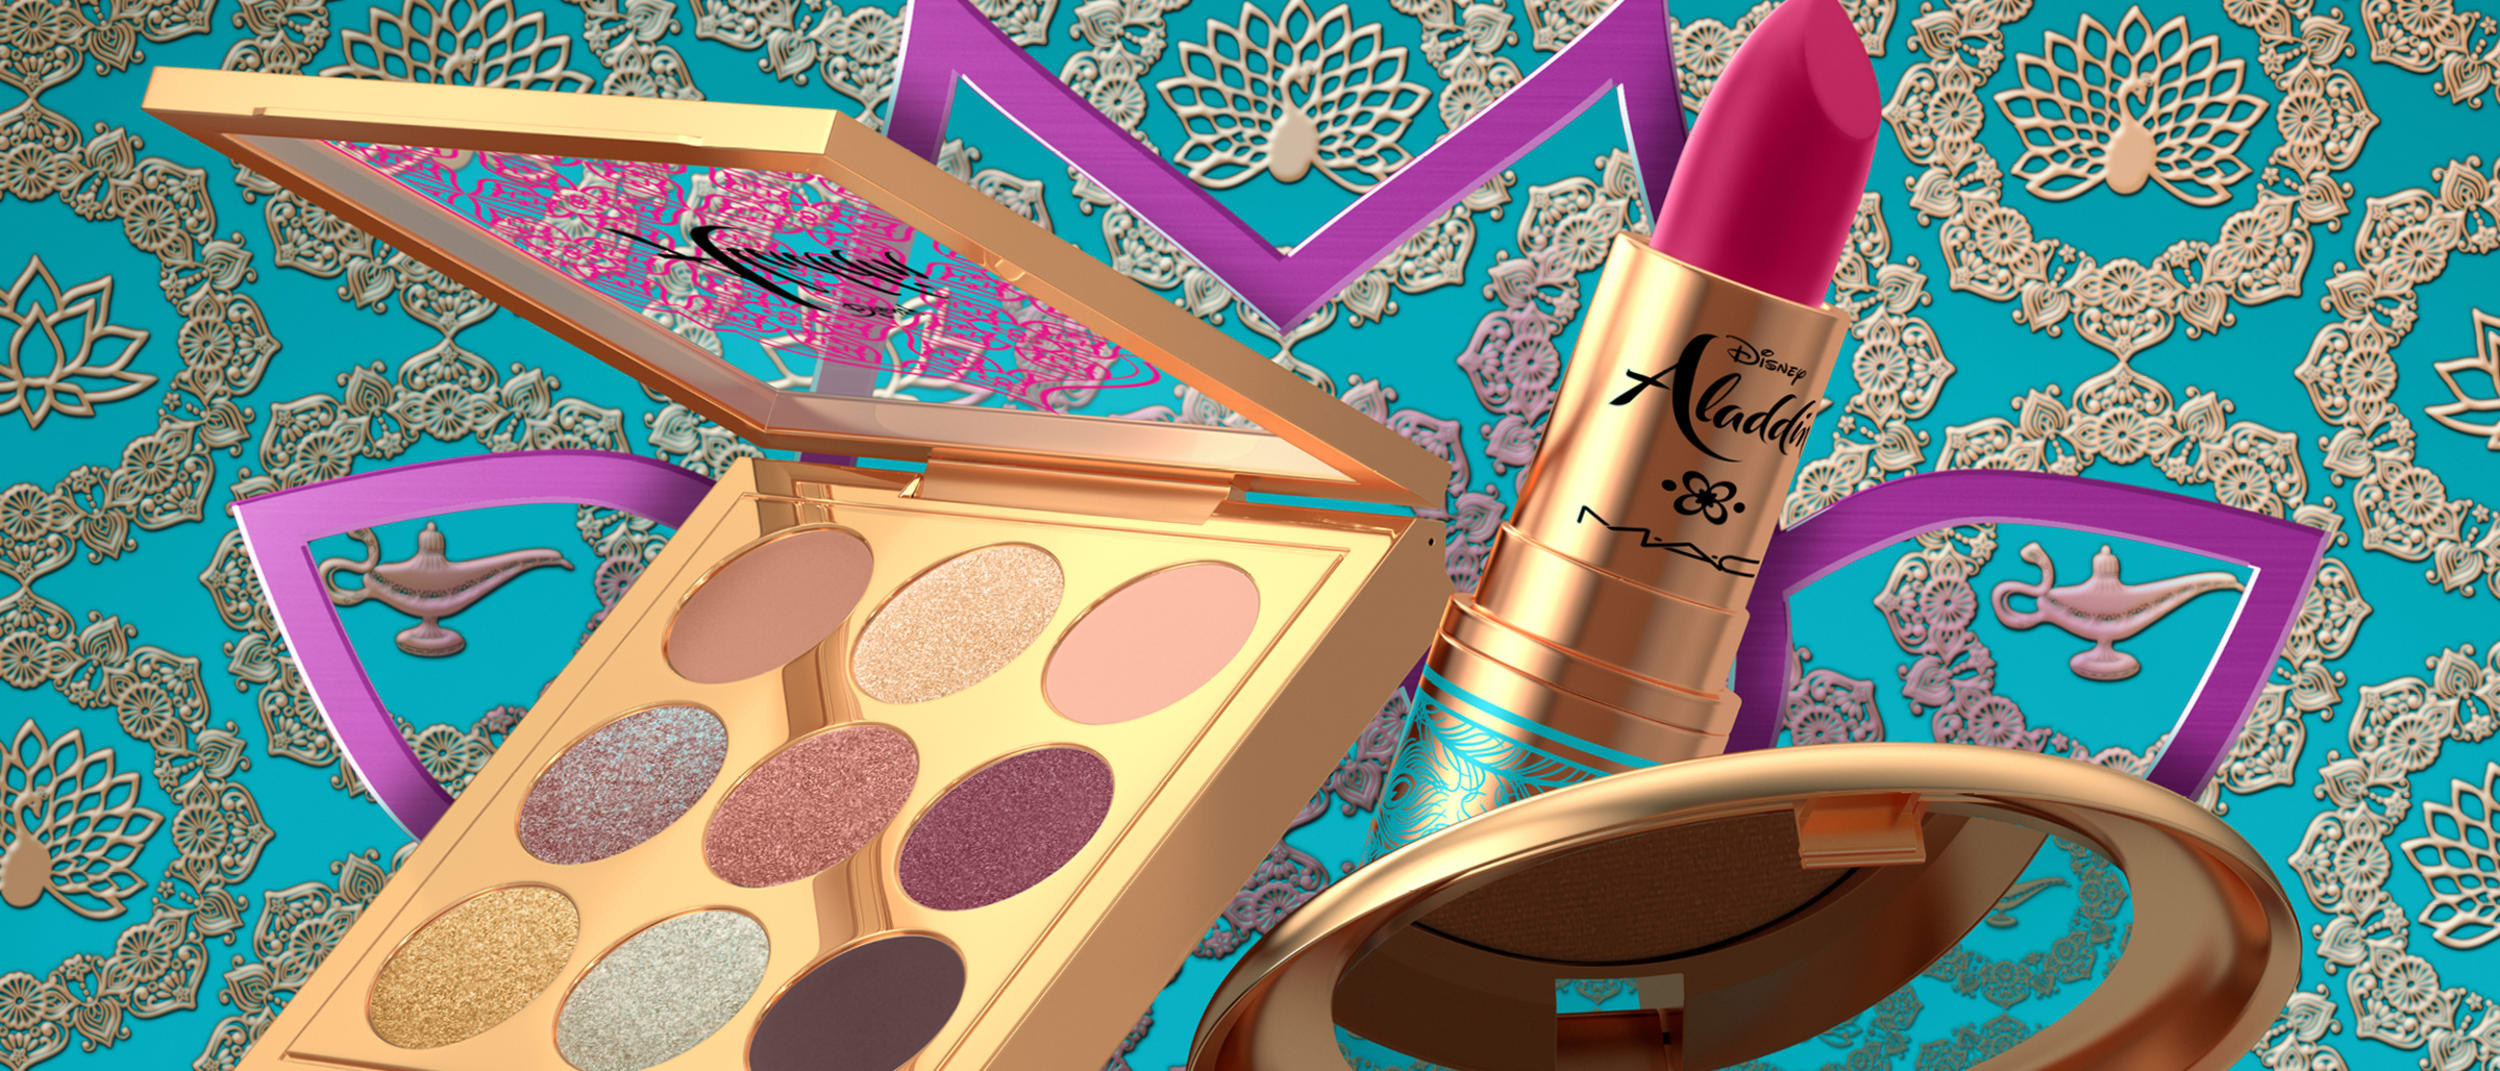 Fulfill your wish with Disney's Aladdin collection by M·A·C